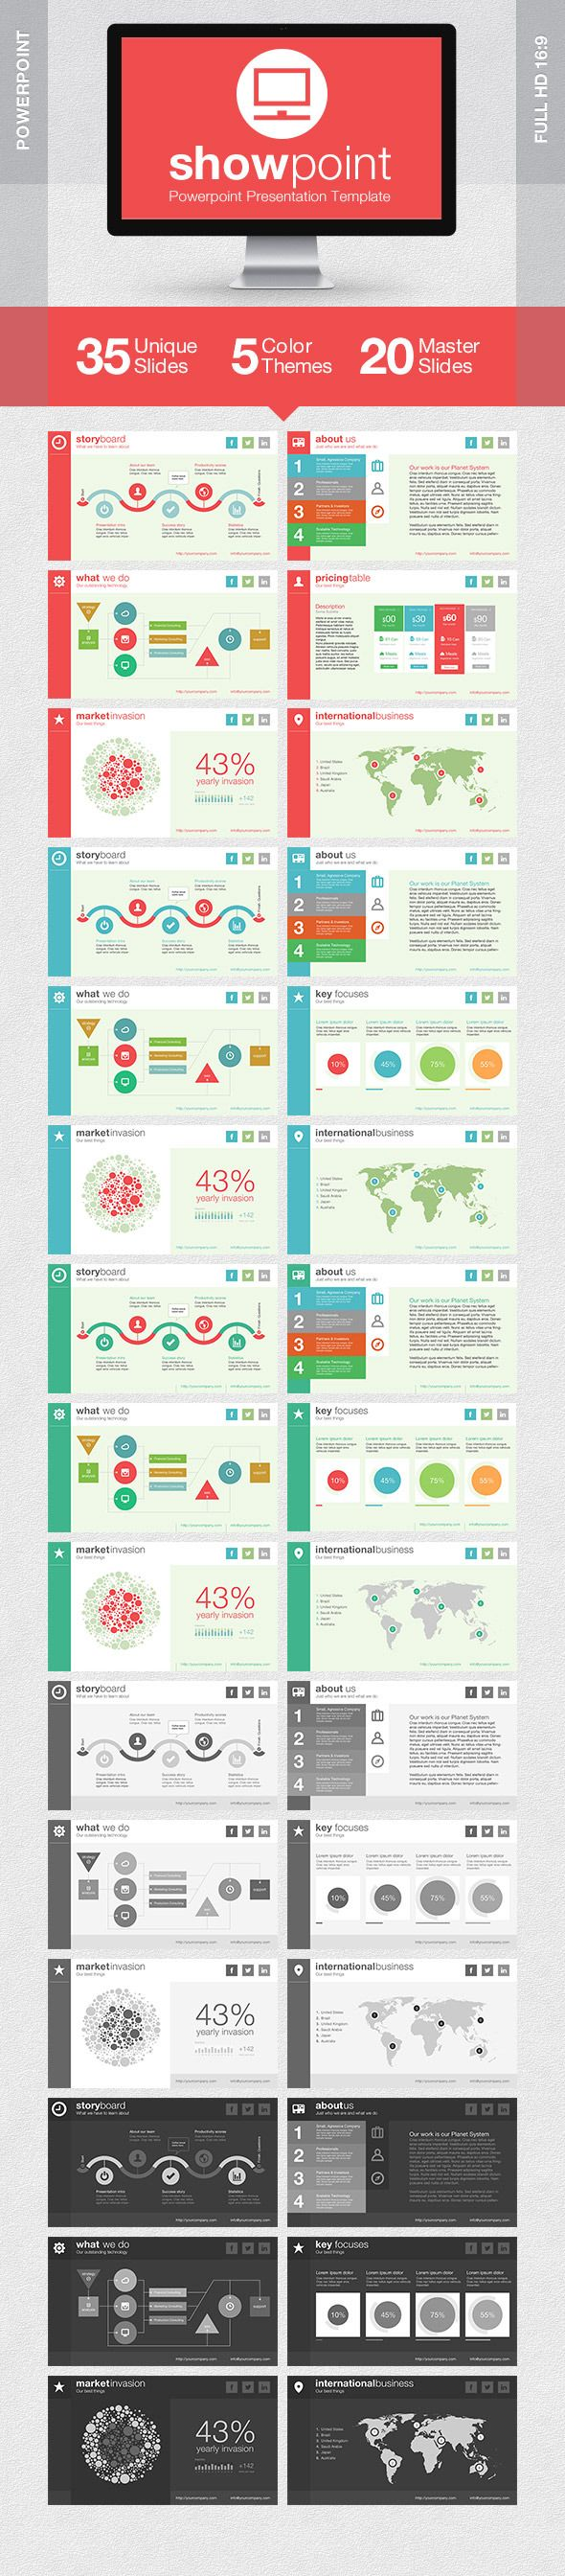 ShowPoint Powerpoint Presentation Template | GraphicRiver